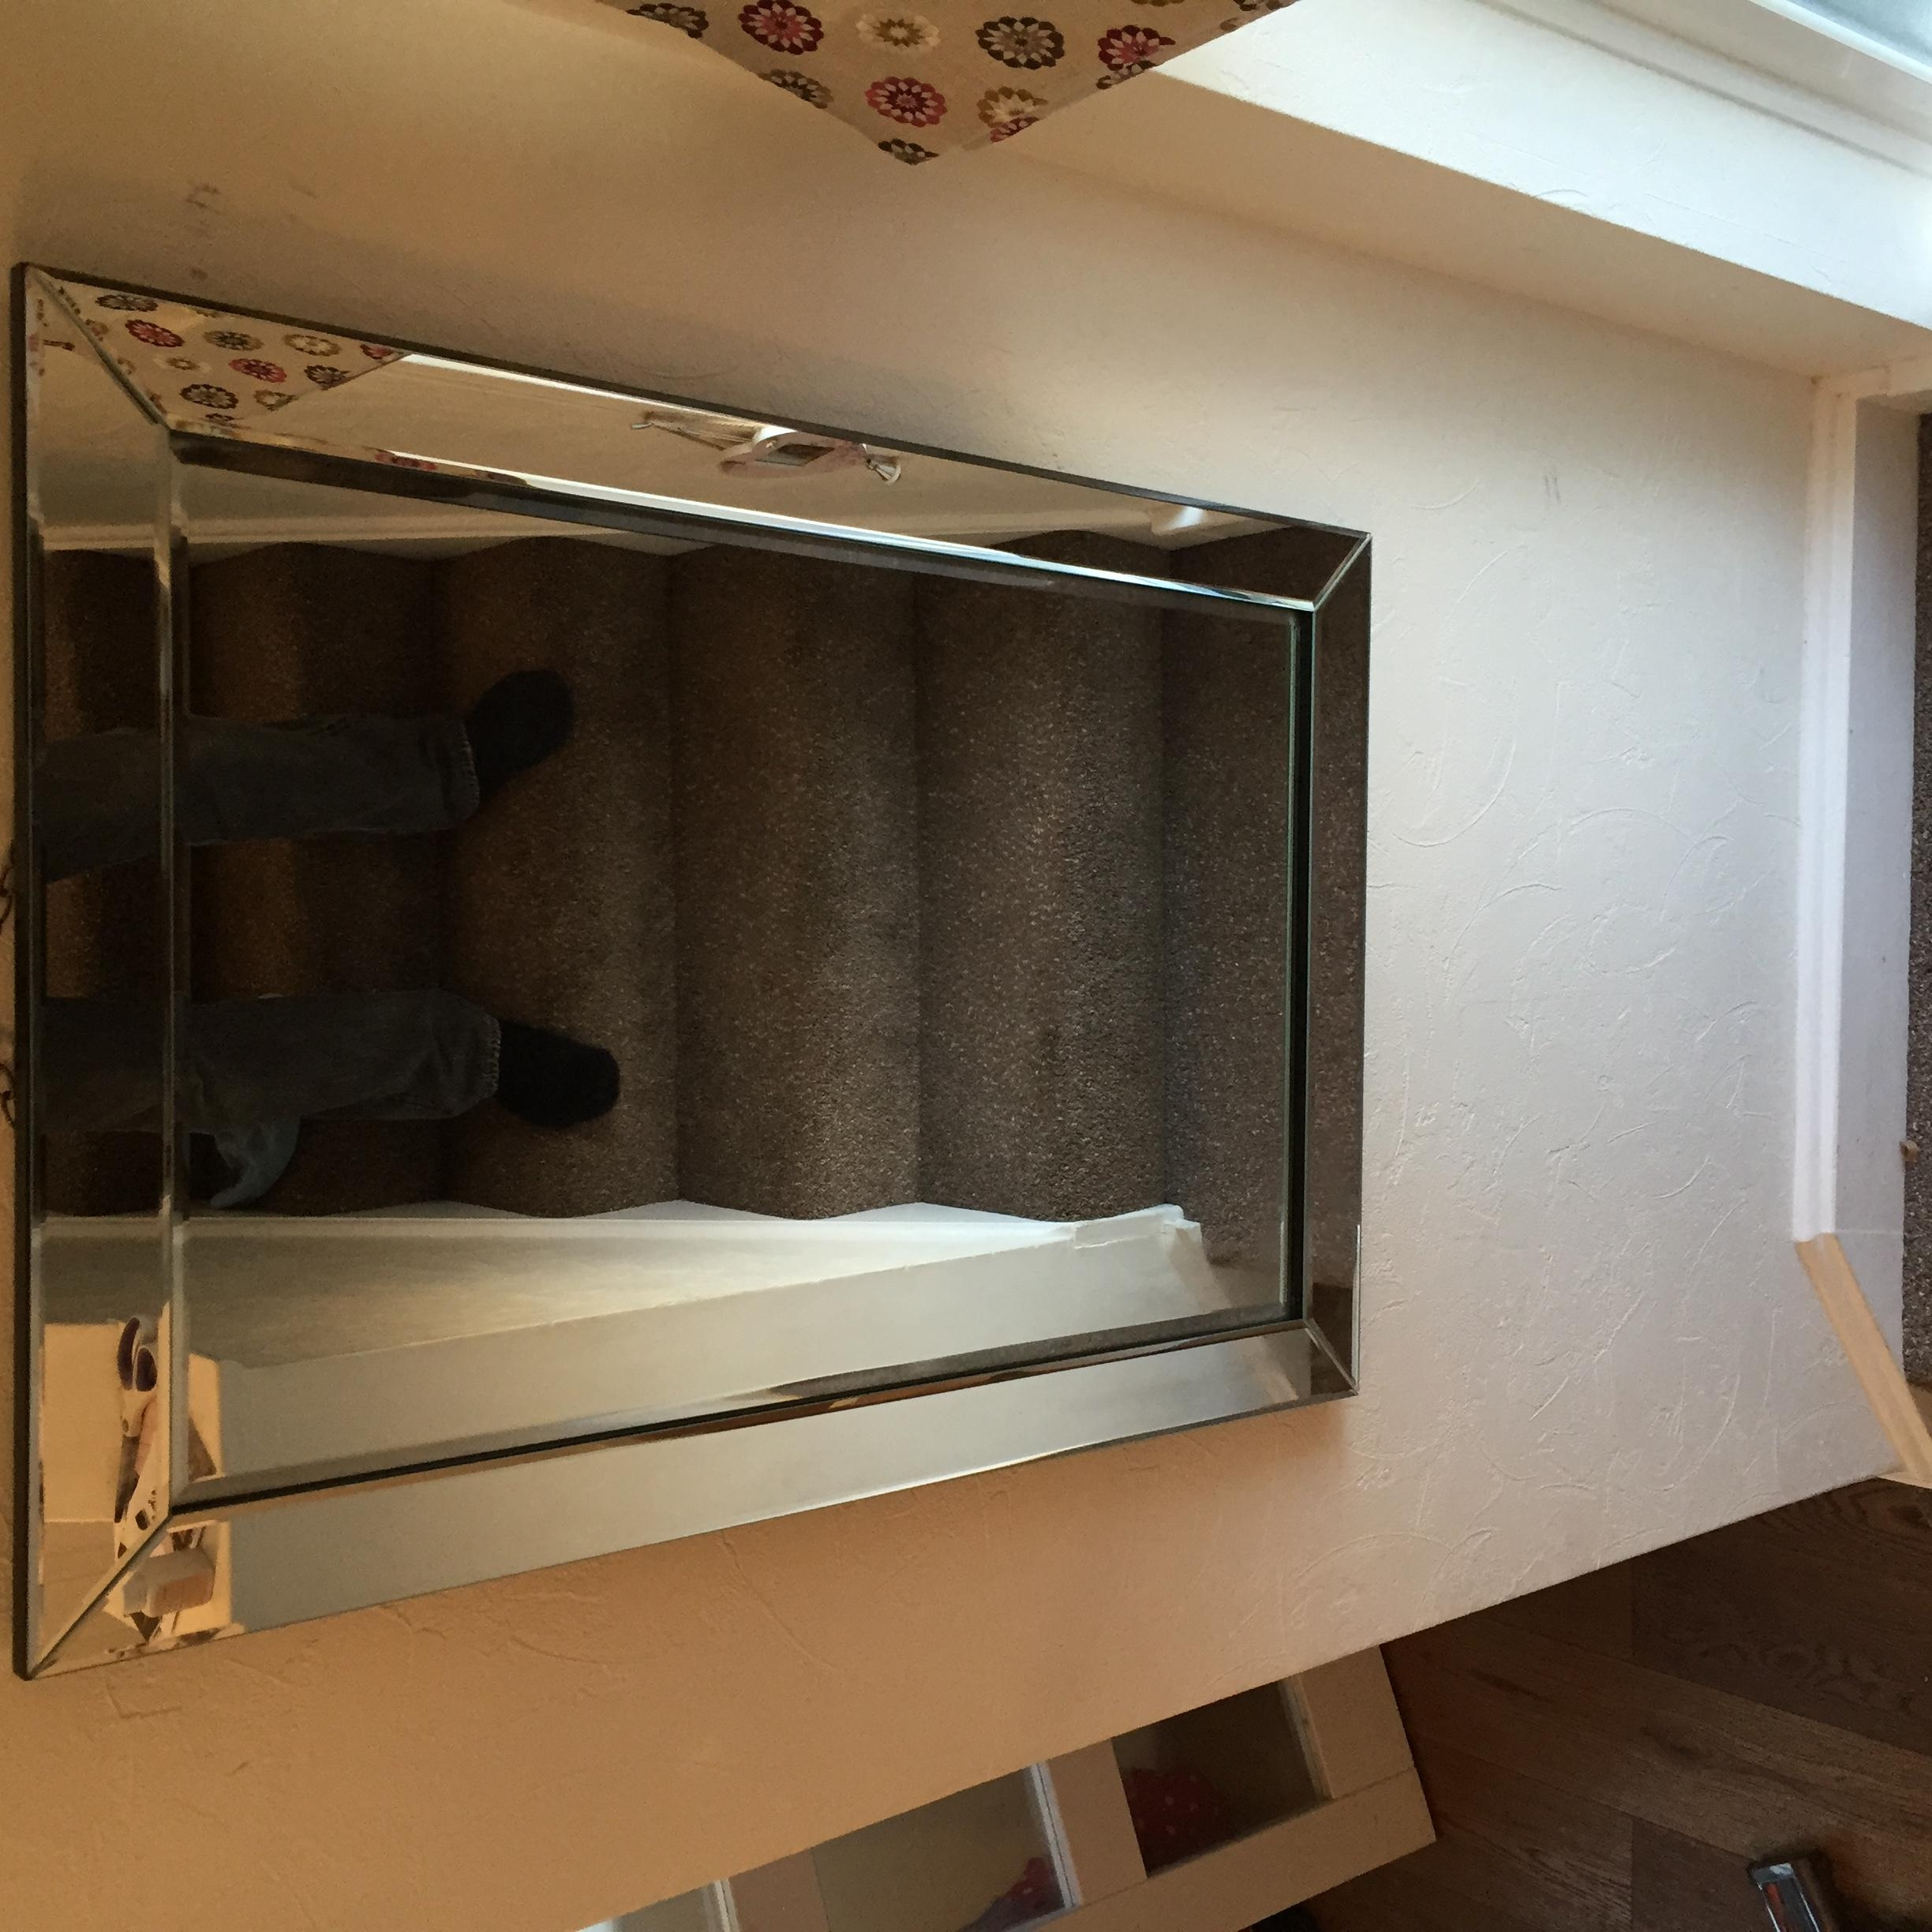 Prs Group Uk | Large Venetian Bevelled Wall Mirror 90Cm X 60Cm For Large Bevelled Mirror (View 2 of 20)